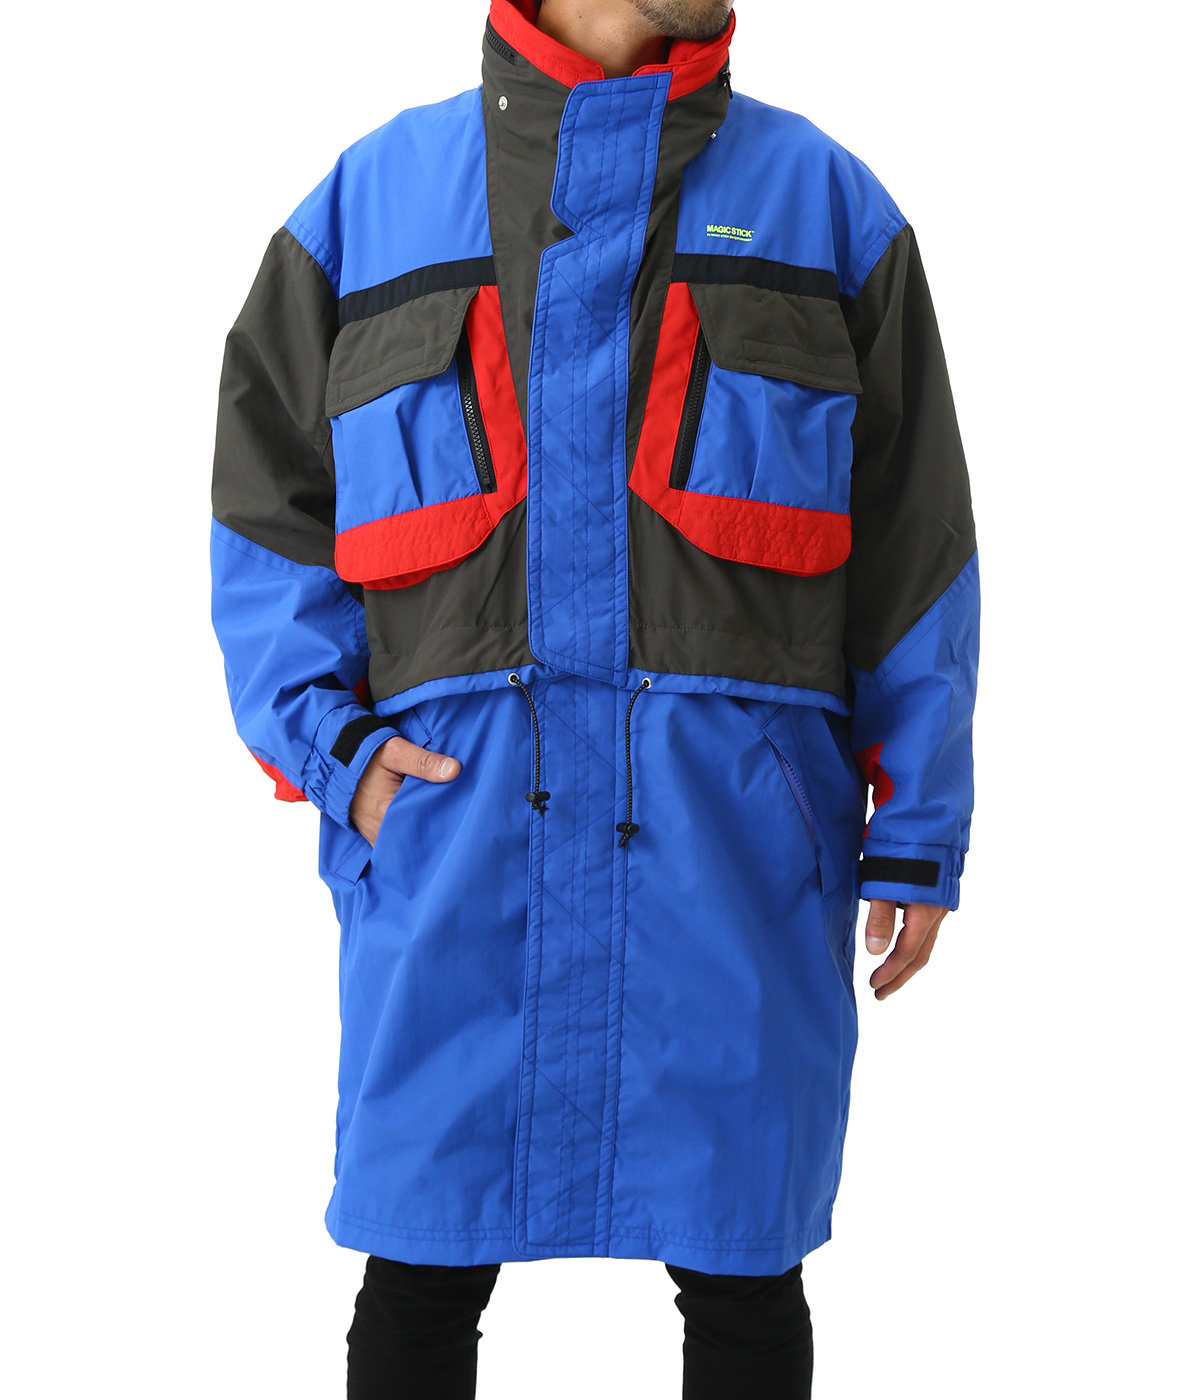 2WAY DETACHABLE SKI JACKET -AURORA 3M-